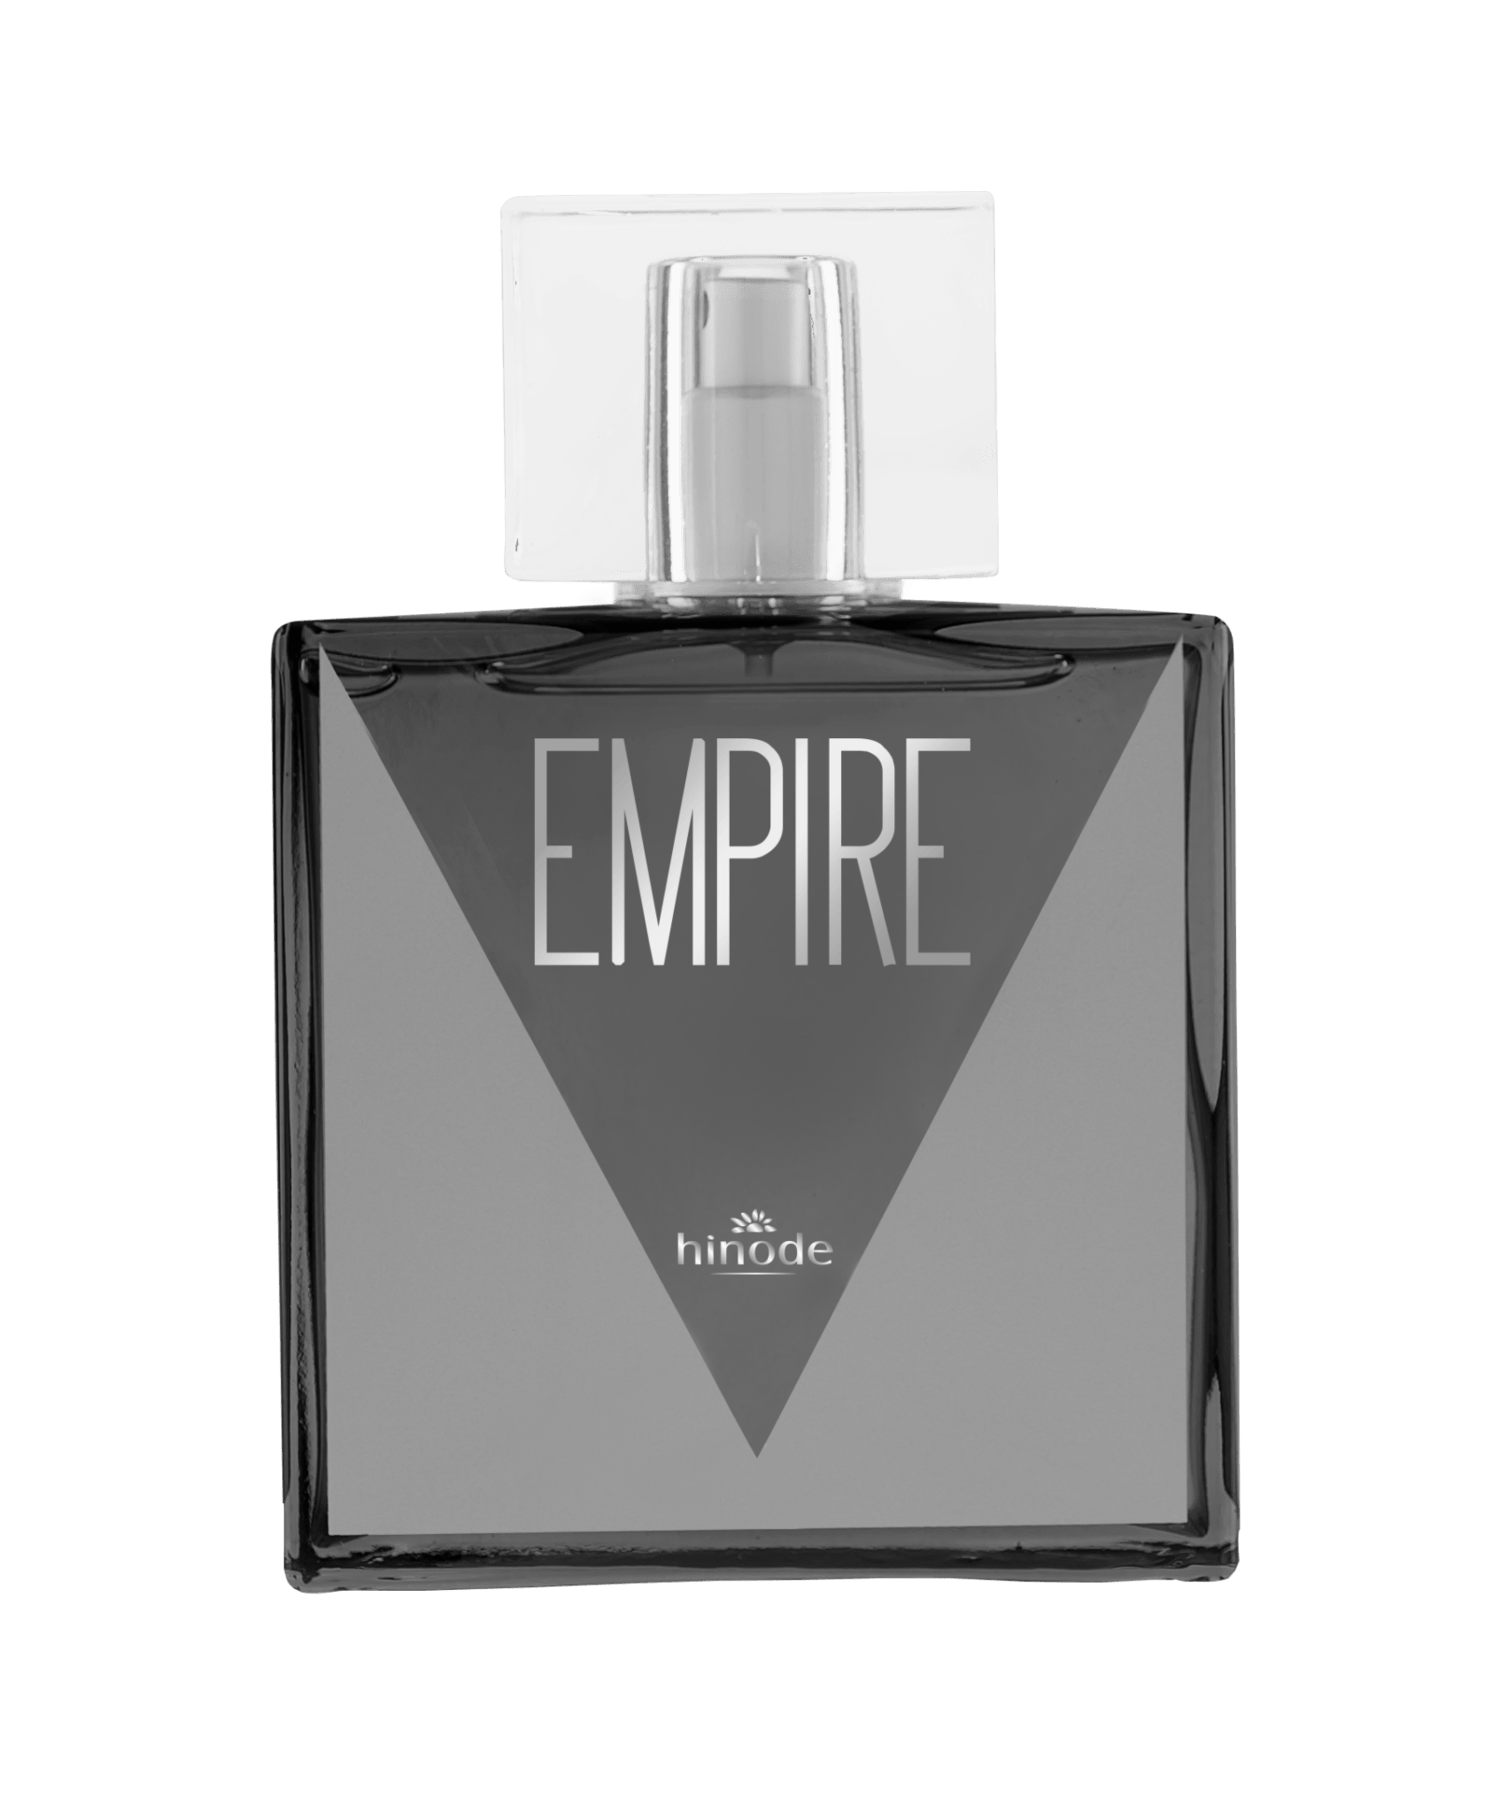 EMPIRE 100ml